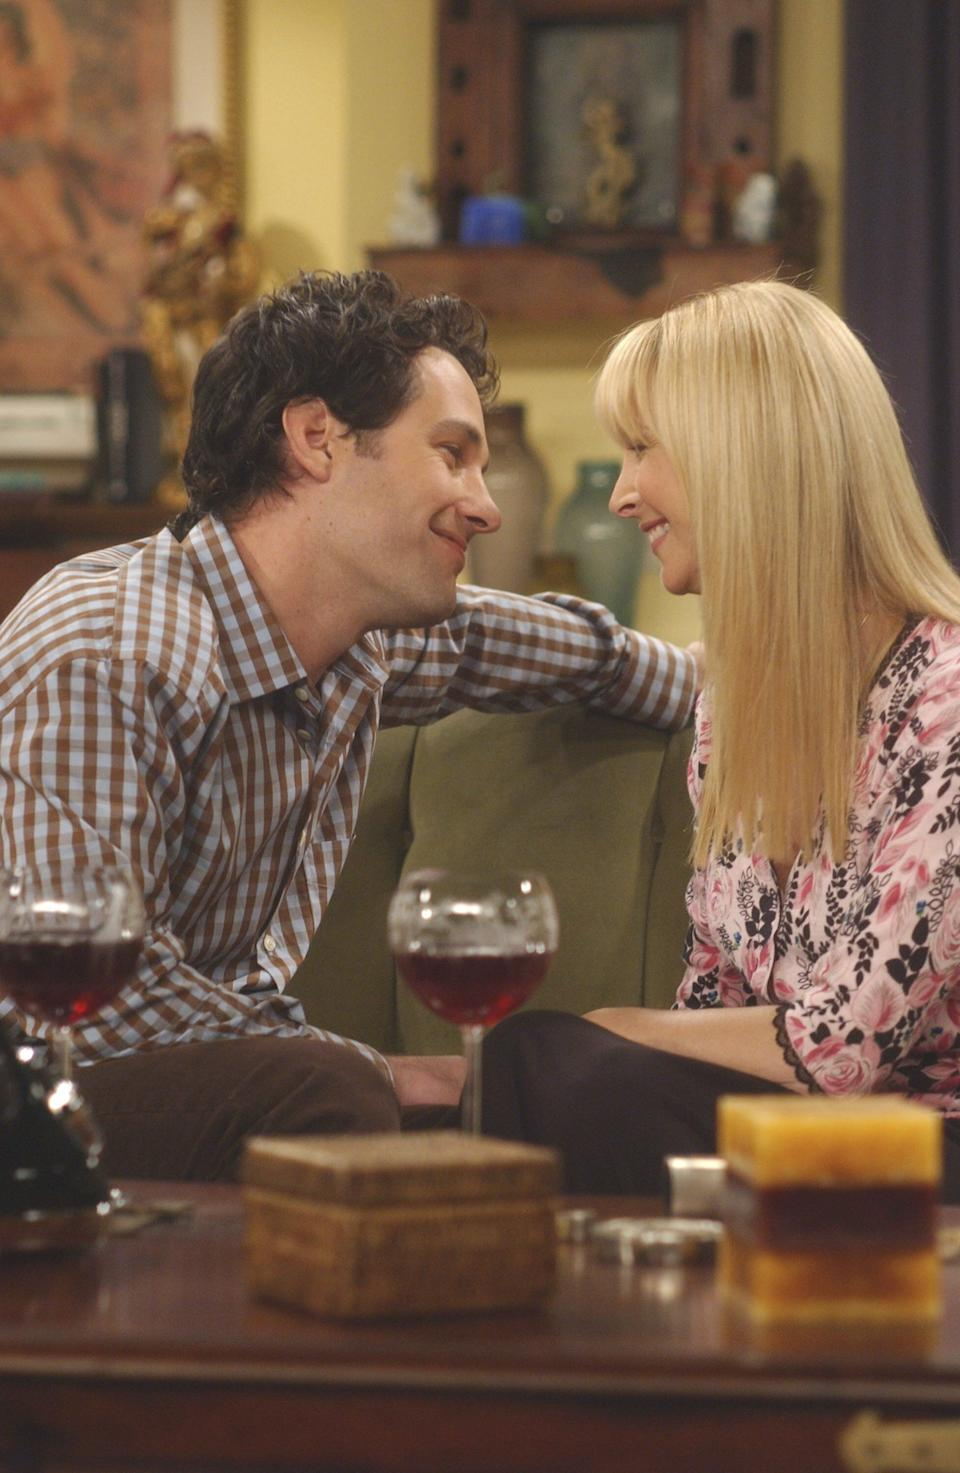 Paul Rudd and Lisa Kudrow on the set of Friends (Photo: NBC via Getty Images)